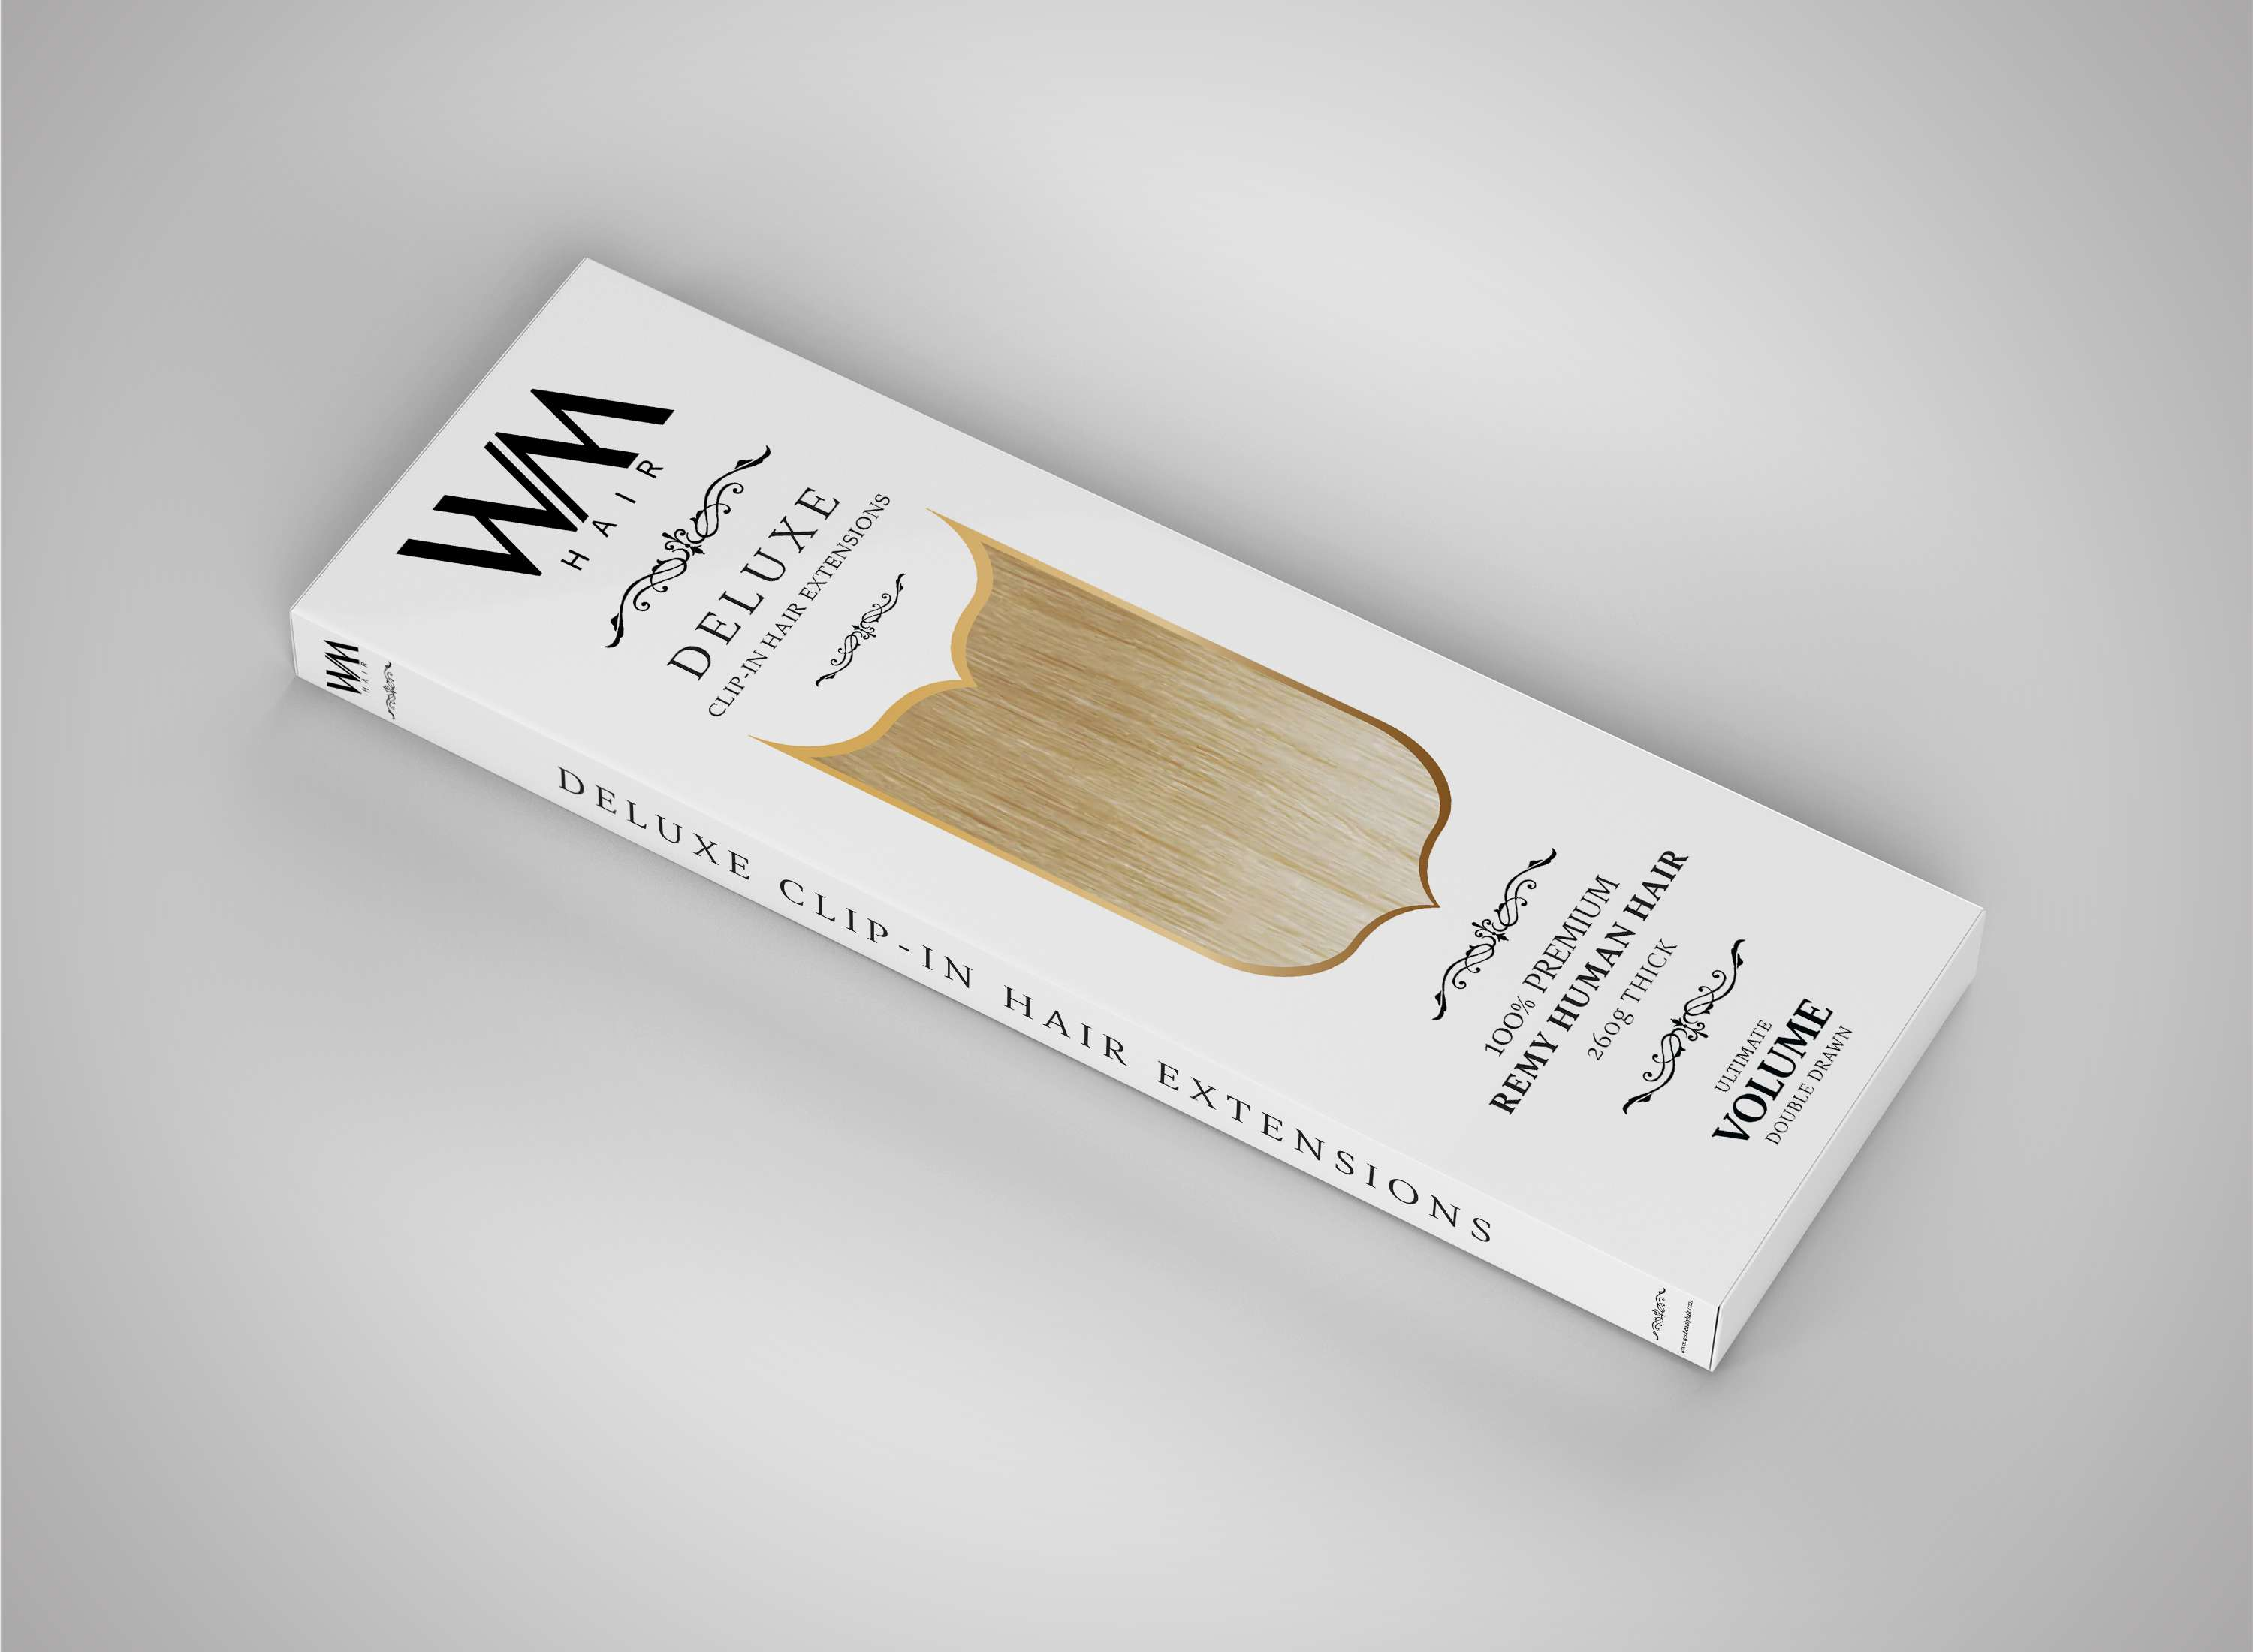 deluxe-clip-in-hair-extensions-packaging-design-remy-angled-image